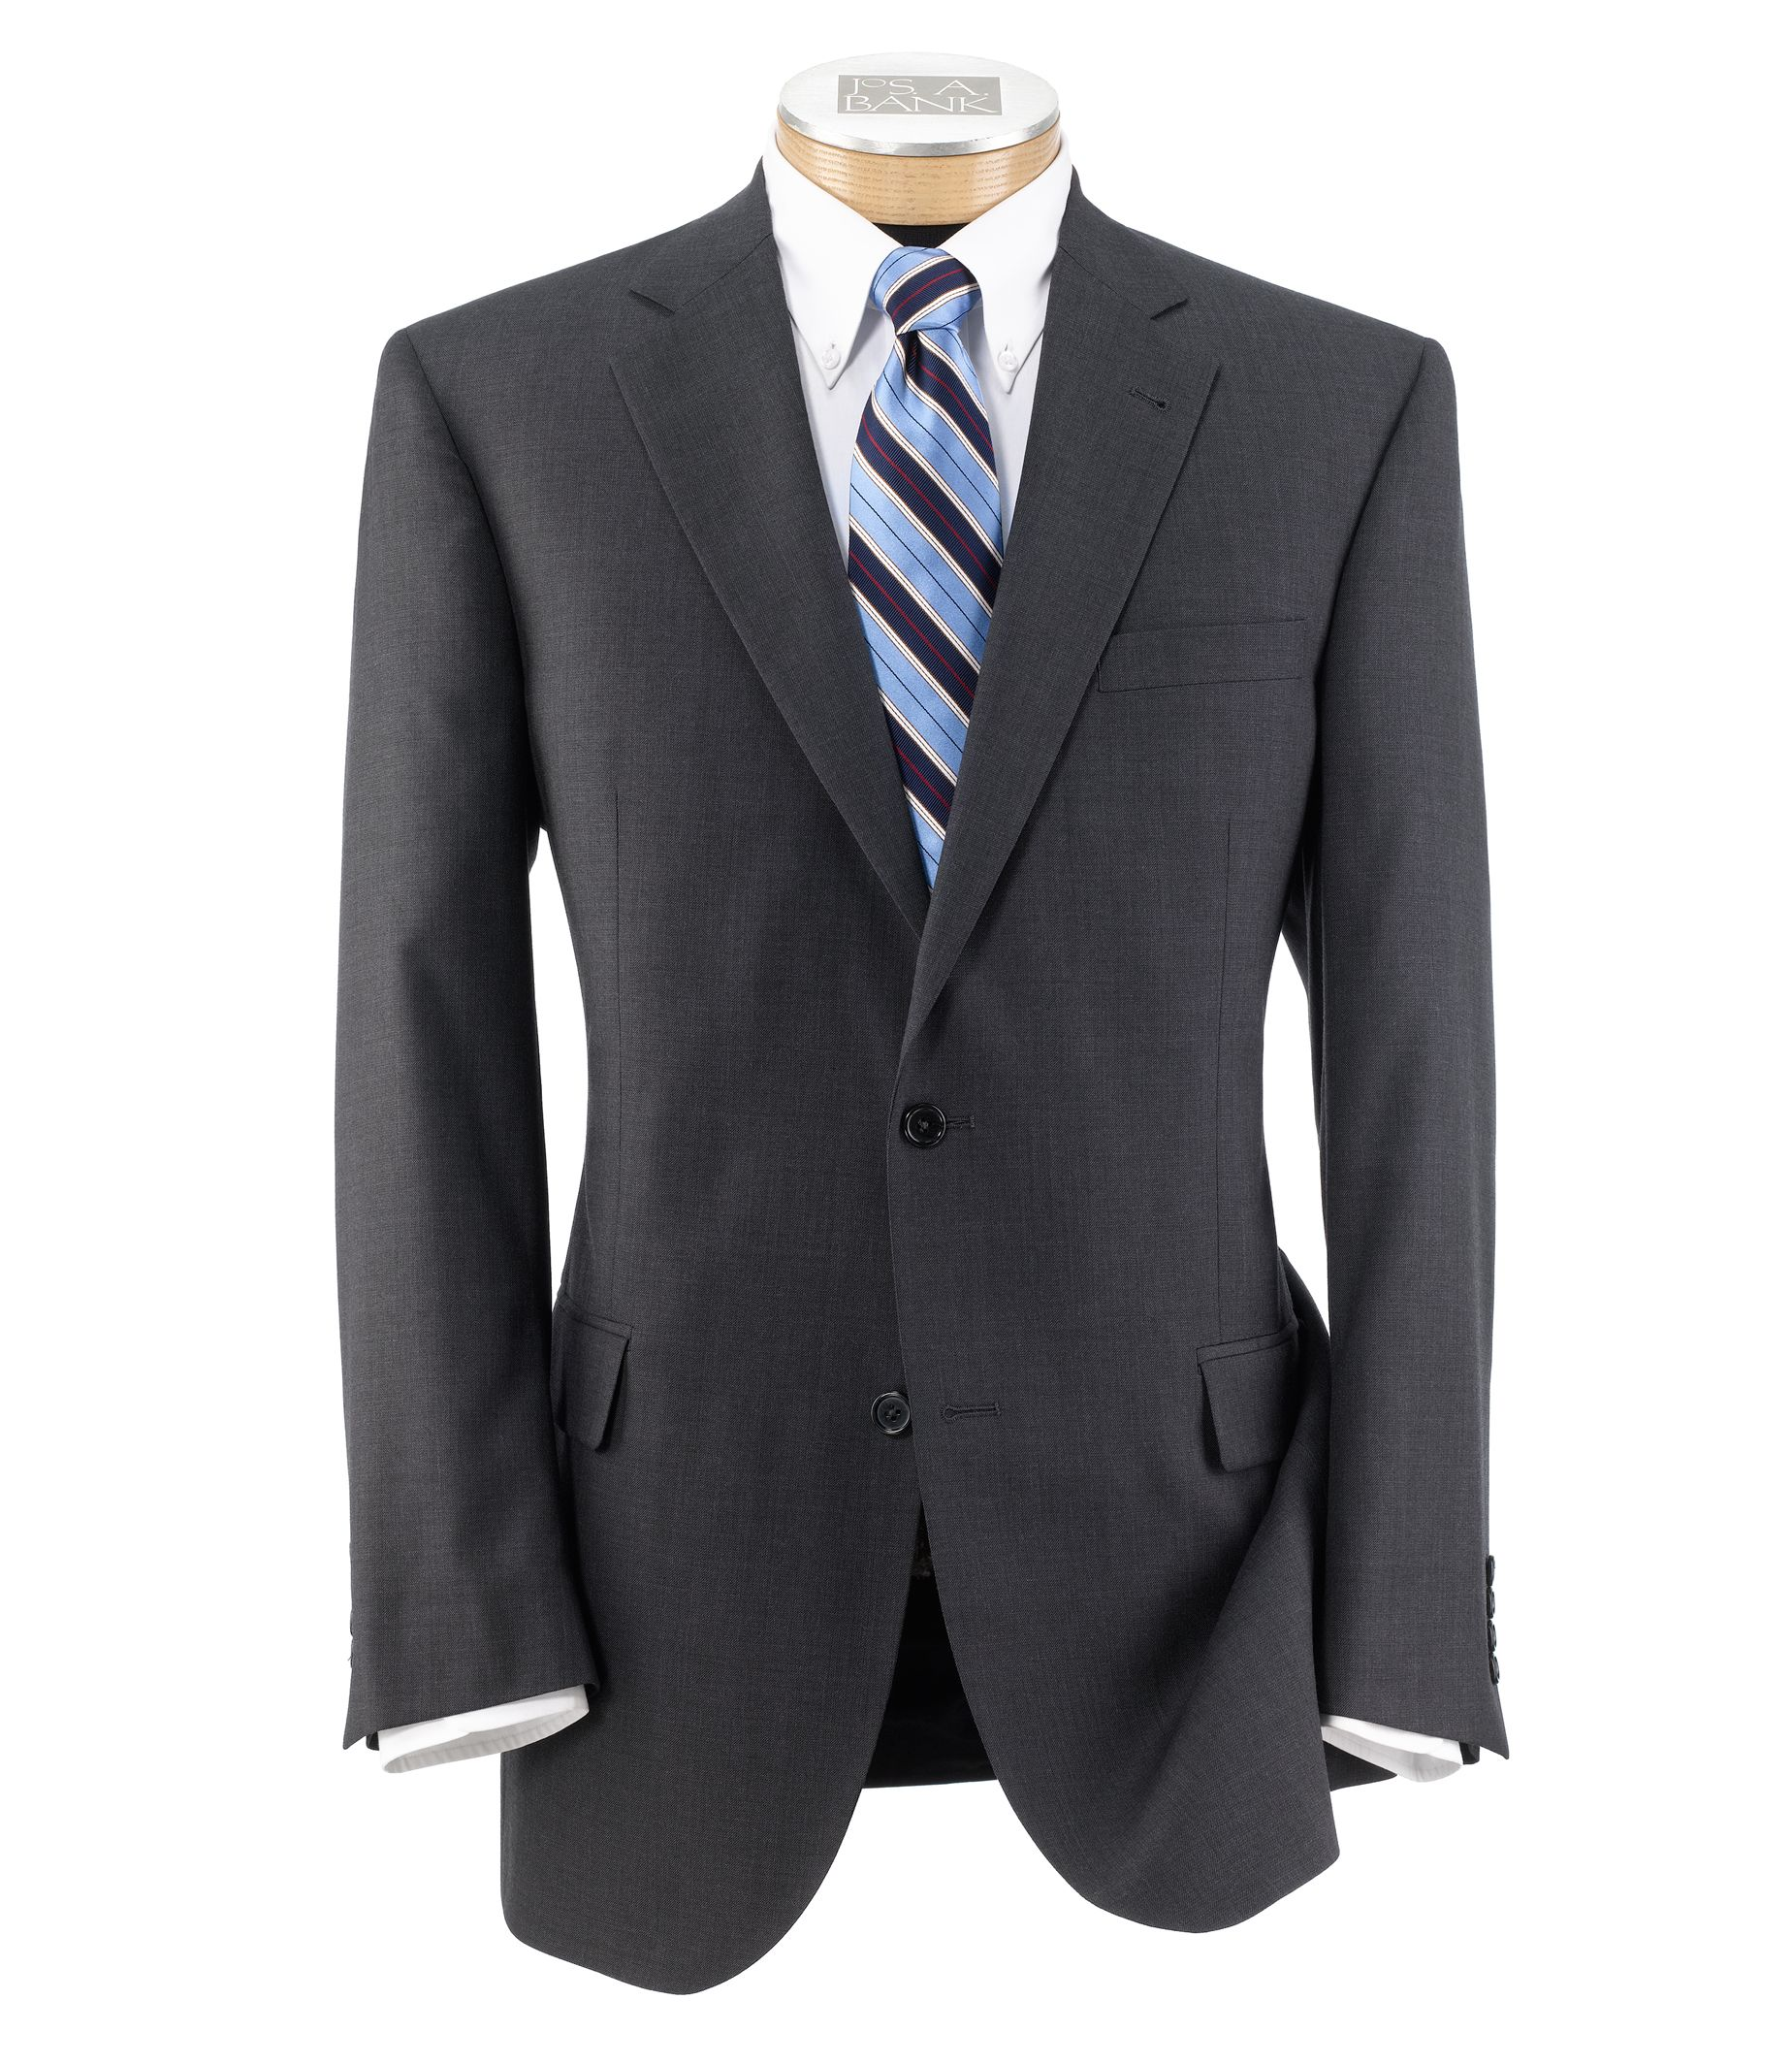 Signature Imperial Wool/Silk Suit with Plain Front Trousers Extended Sizes- Grey